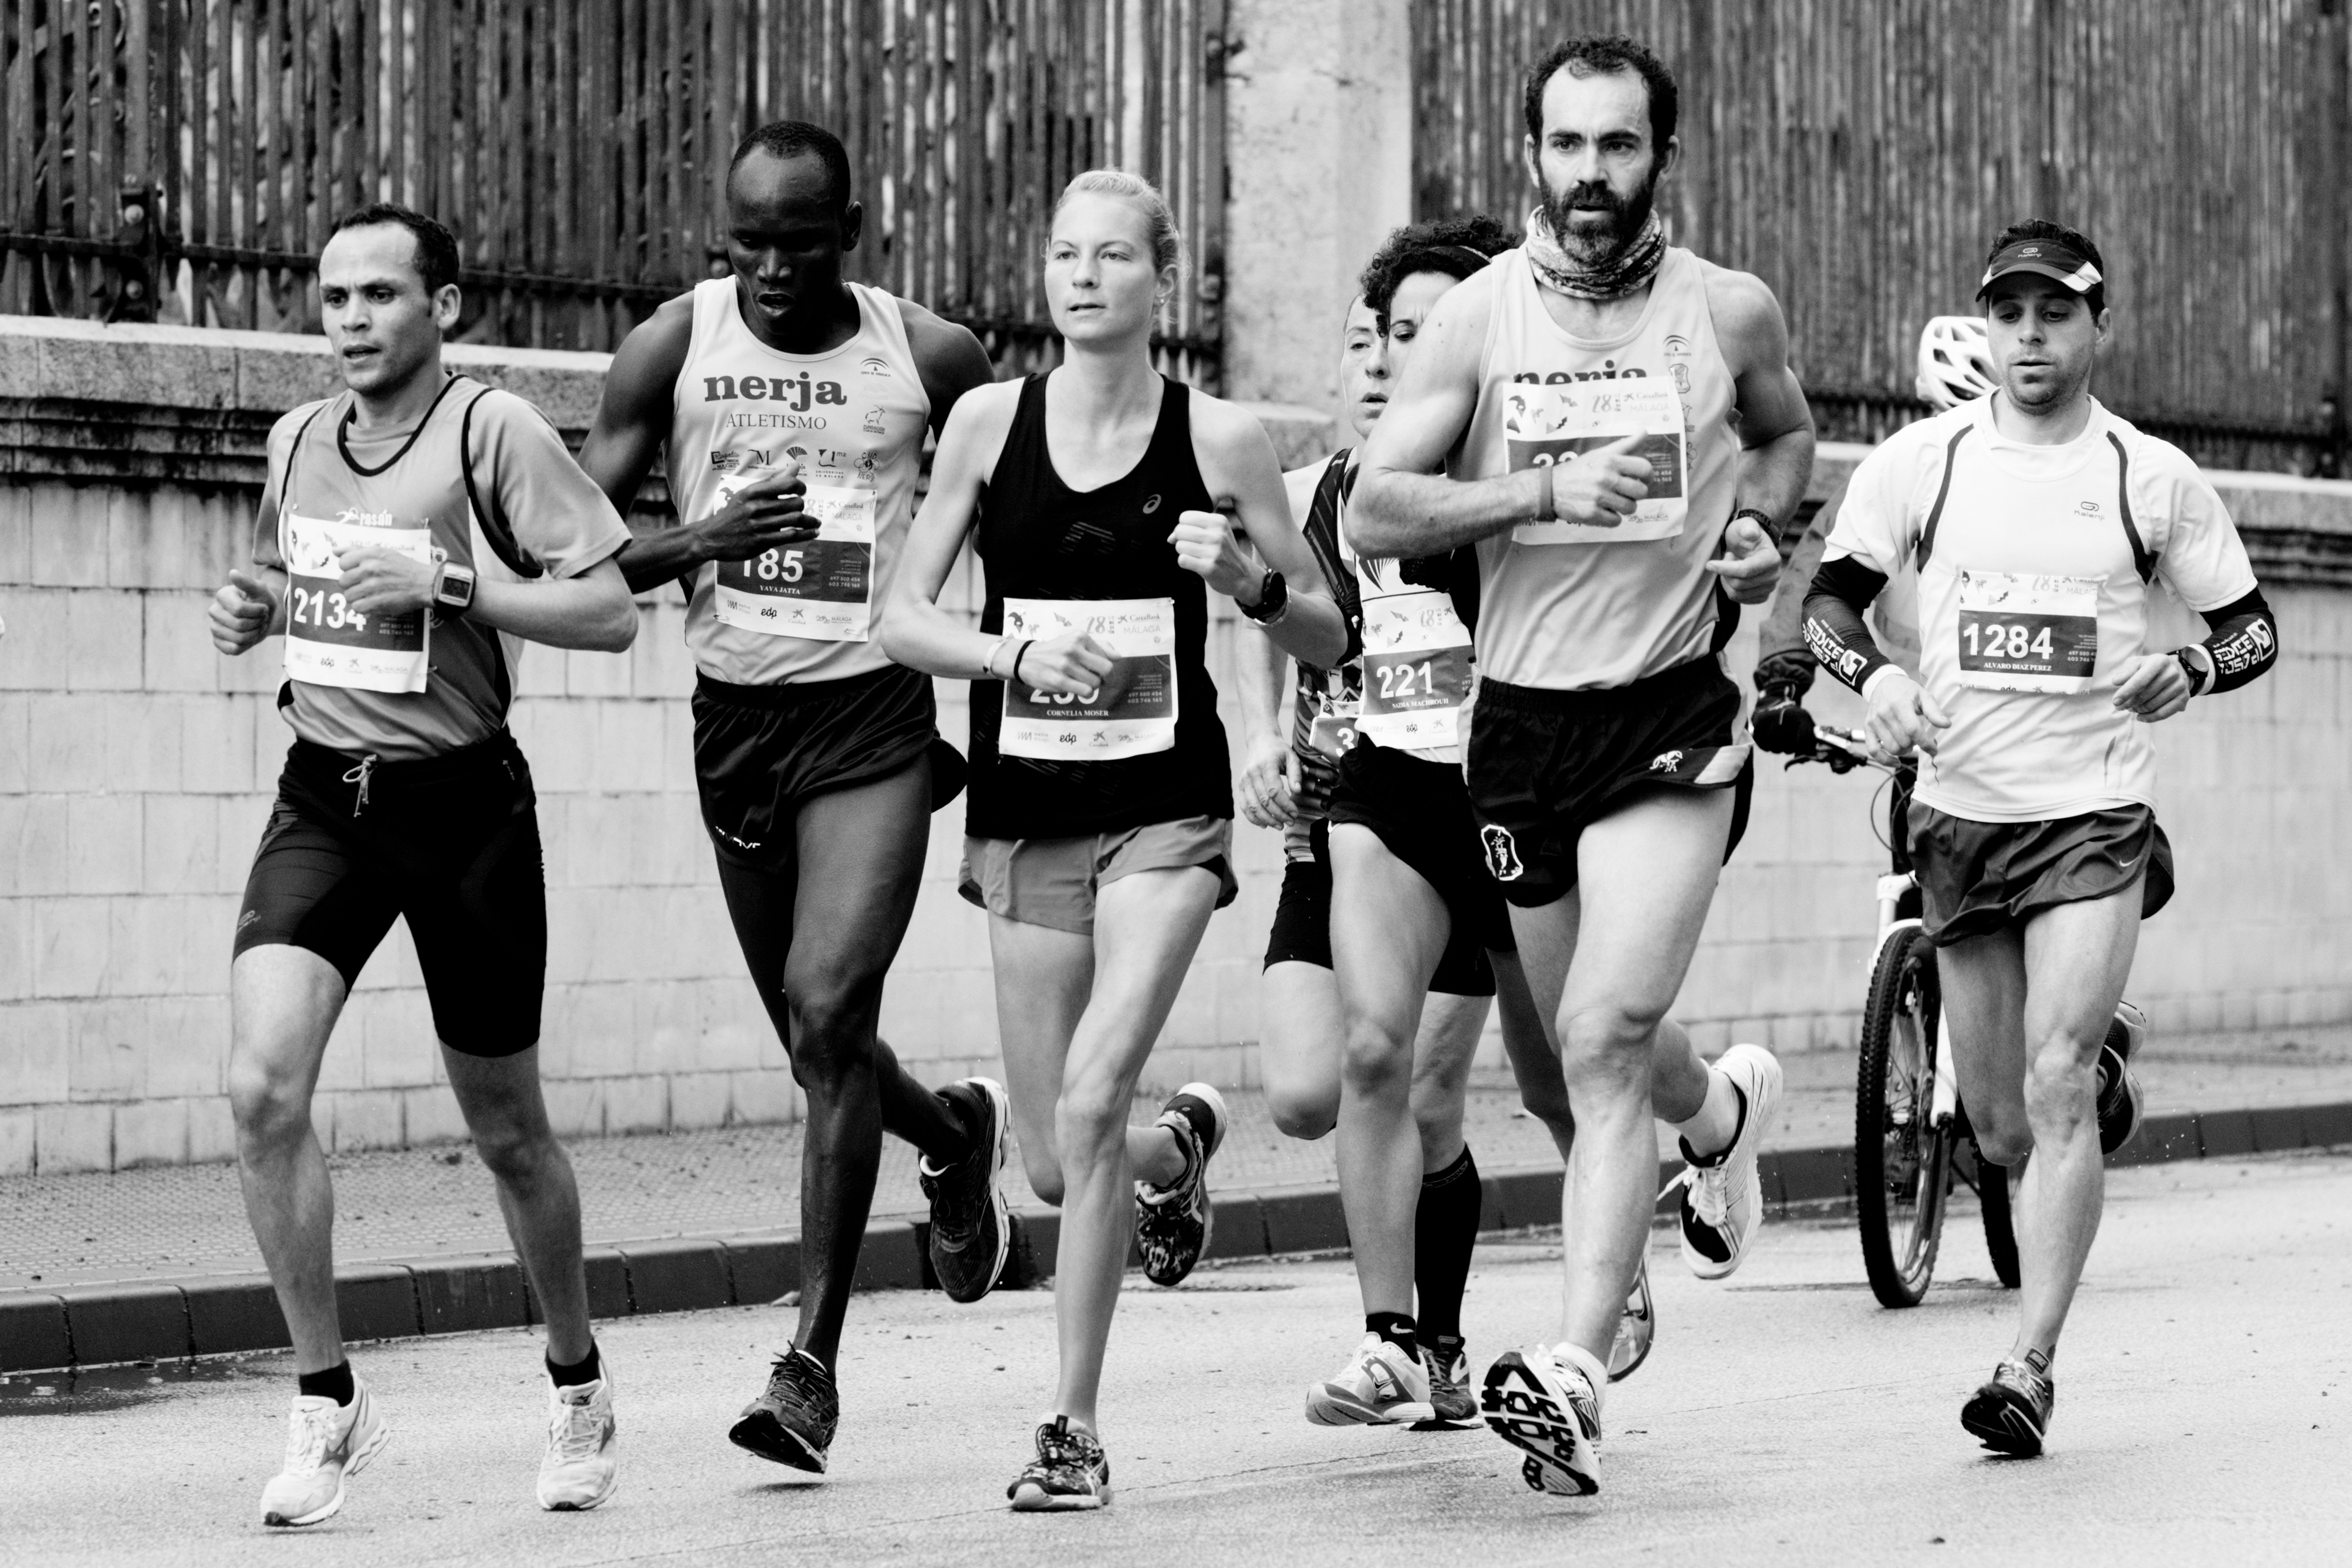 Black and white image of people running